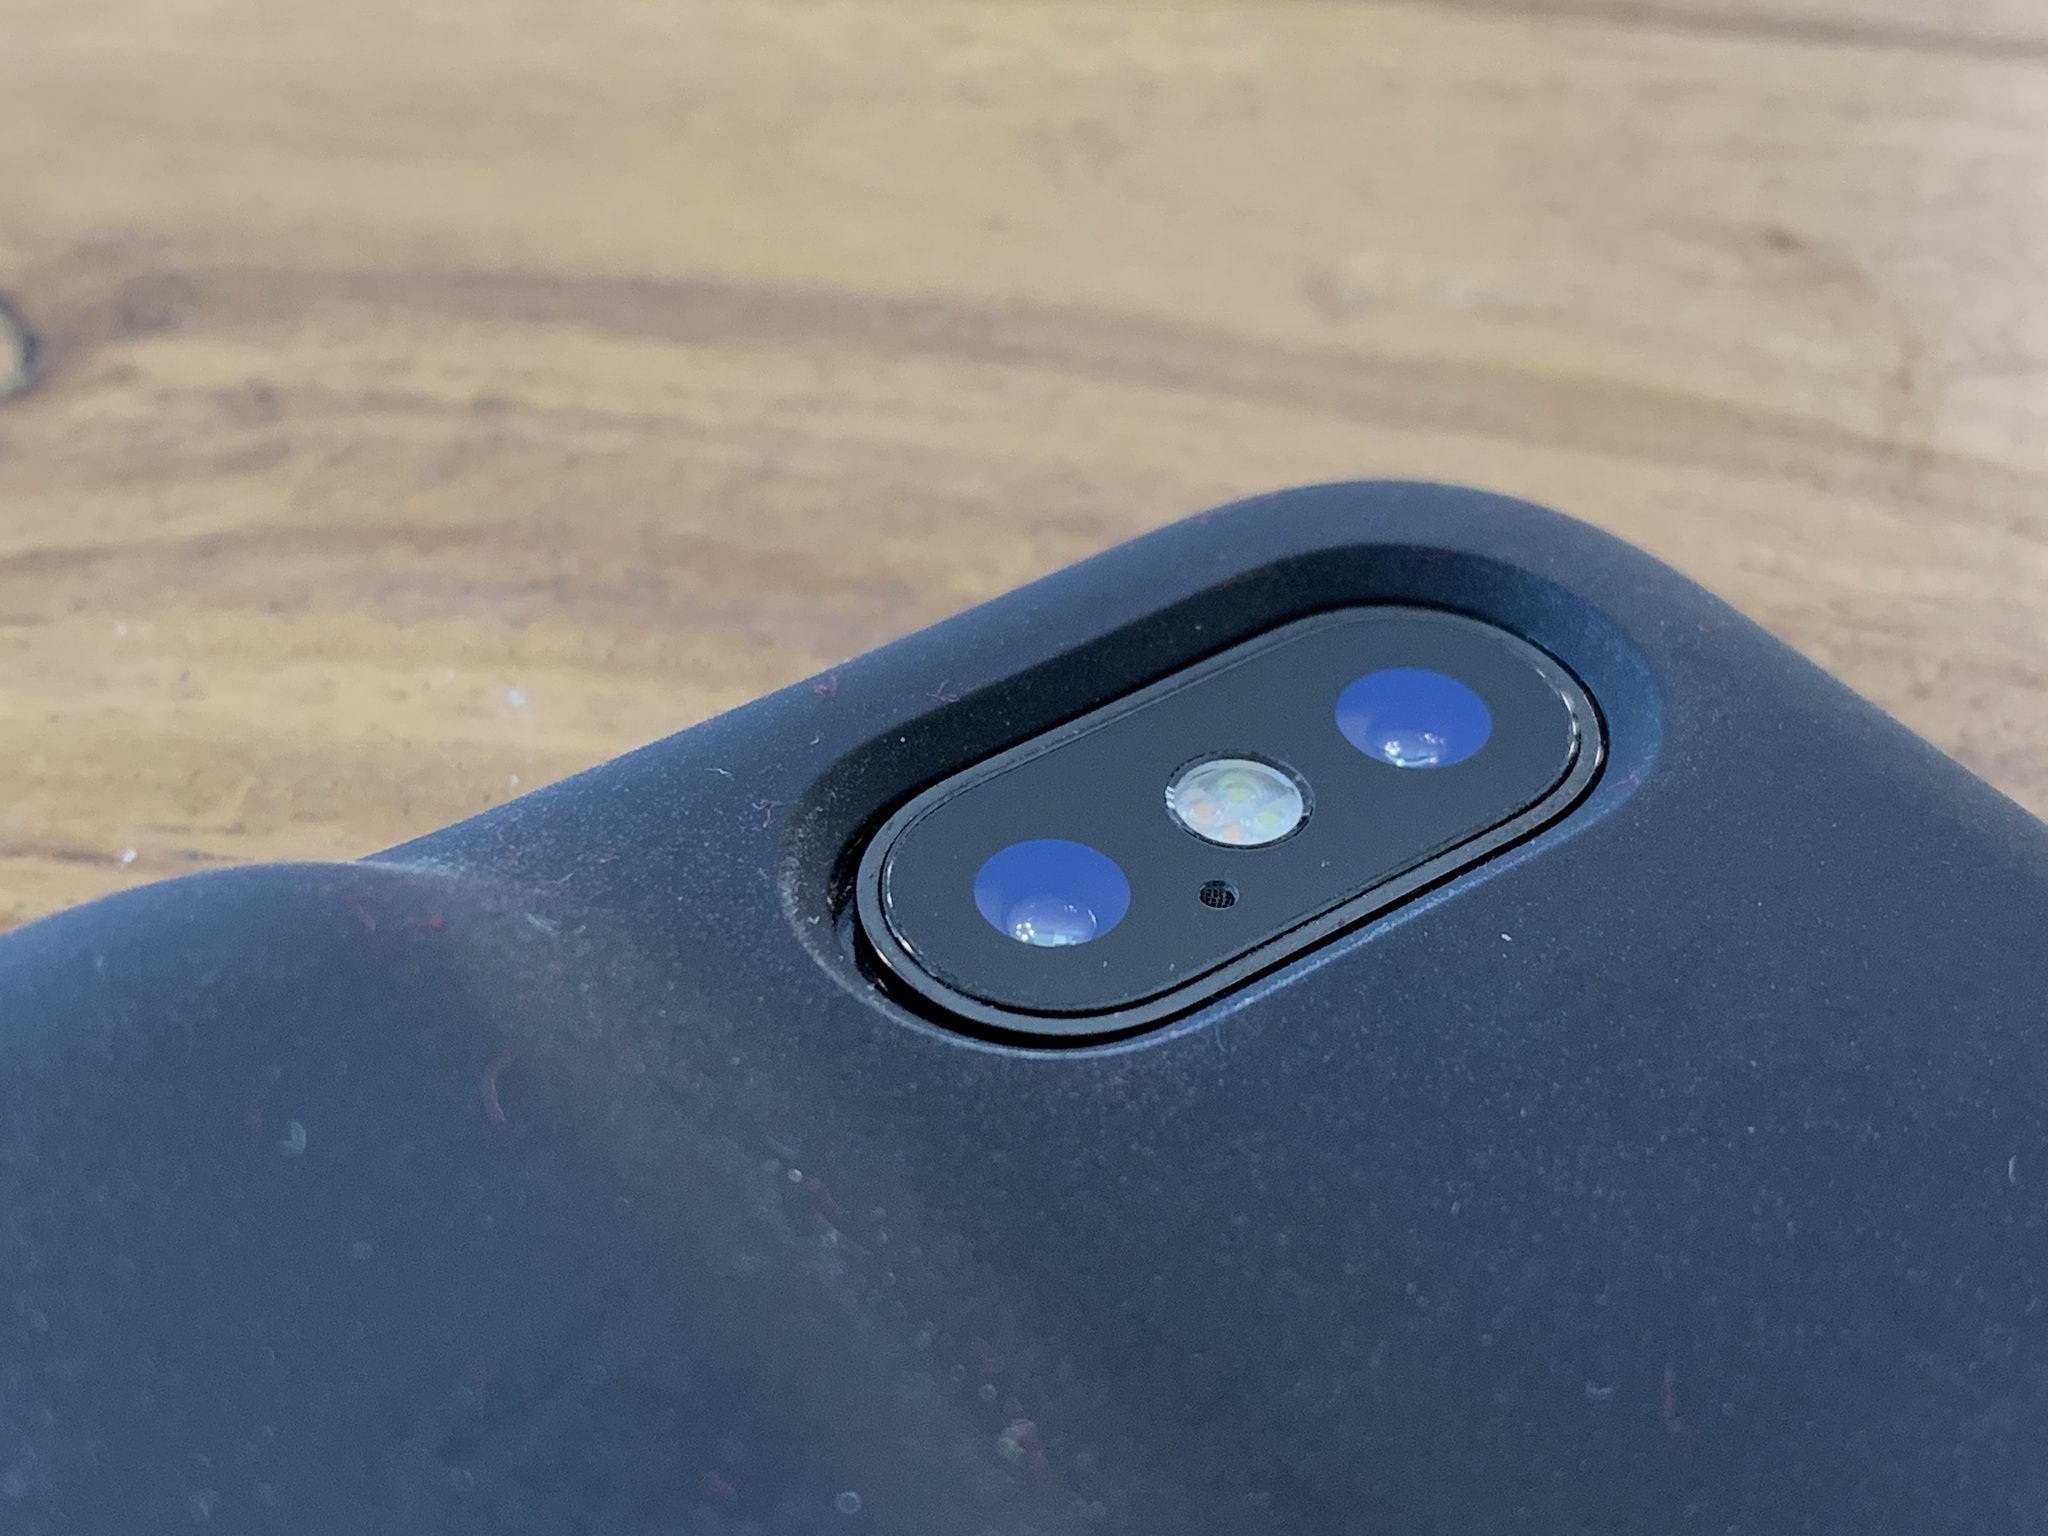 info for 2e7ae 22cad Apple's new Smart Battery Case fits an iPhone X, but charging ...